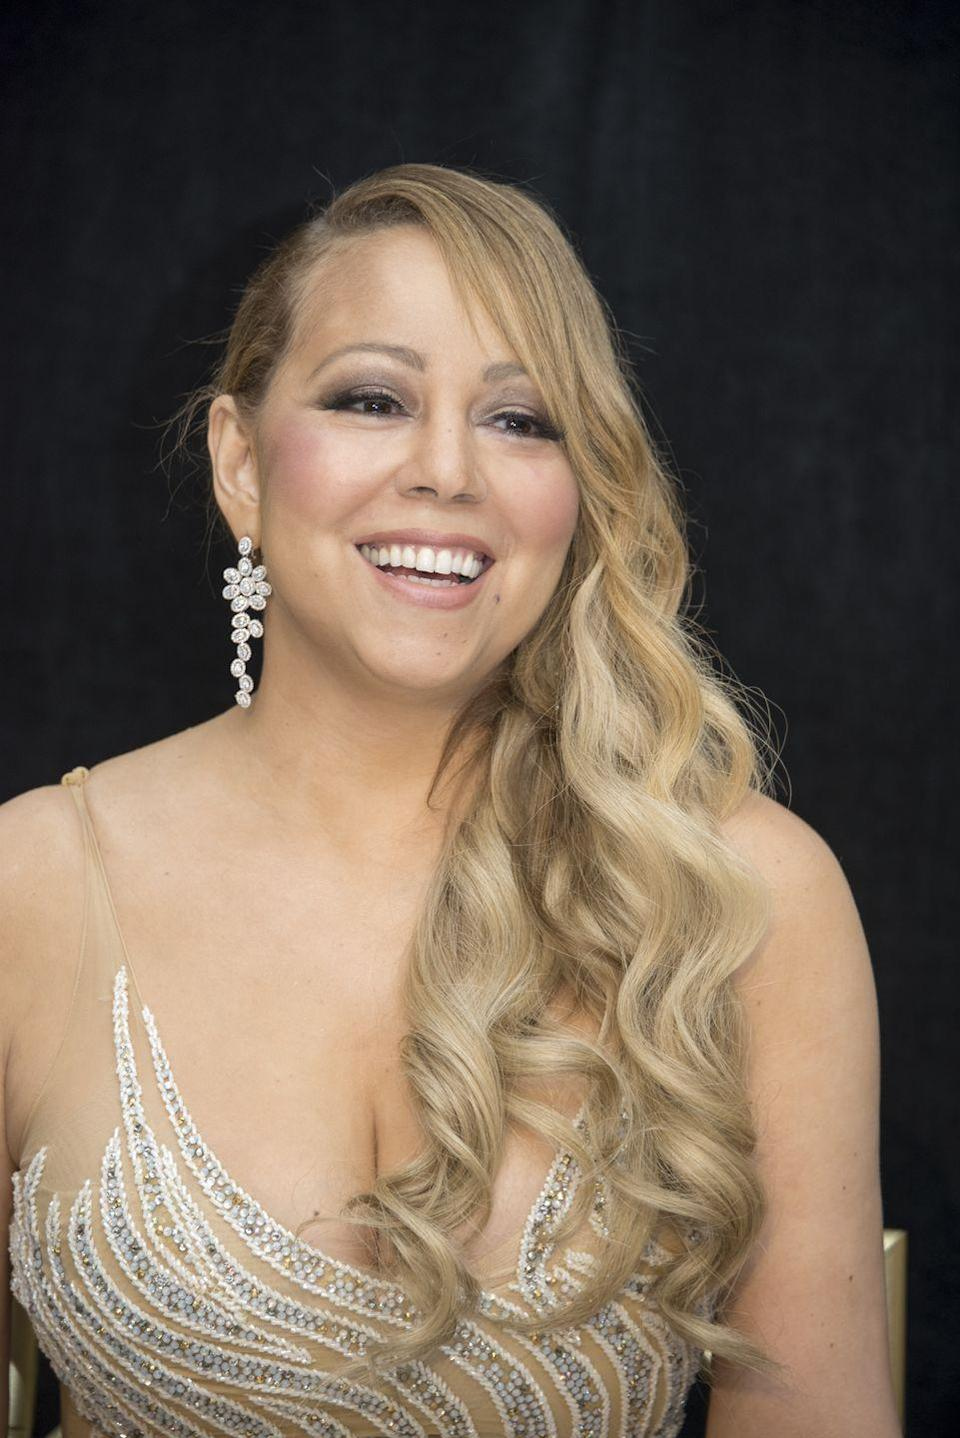 """<p>The superstar singer just spoke out about receiving her bipolar diagnosis in 2001 to <em><a href=""""http://people.com/music/mariah-carey-bipolar-disorder-diagnosis-exclusive/"""" rel=""""nofollow noopener"""" target=""""_blank"""" data-ylk=""""slk:People"""" class=""""link rapid-noclick-resp"""">People</a>. </em>""""Until recently I lived in denial and isolation and in constant fear someone would expose me,"""" she says in the cover story. """"It was too heavy a burden to carry and I simply couldn't do that anymore. I sought and received treatment, I put positive people around me and I got back to doing what I love — writing songs and making music.""""</p>"""